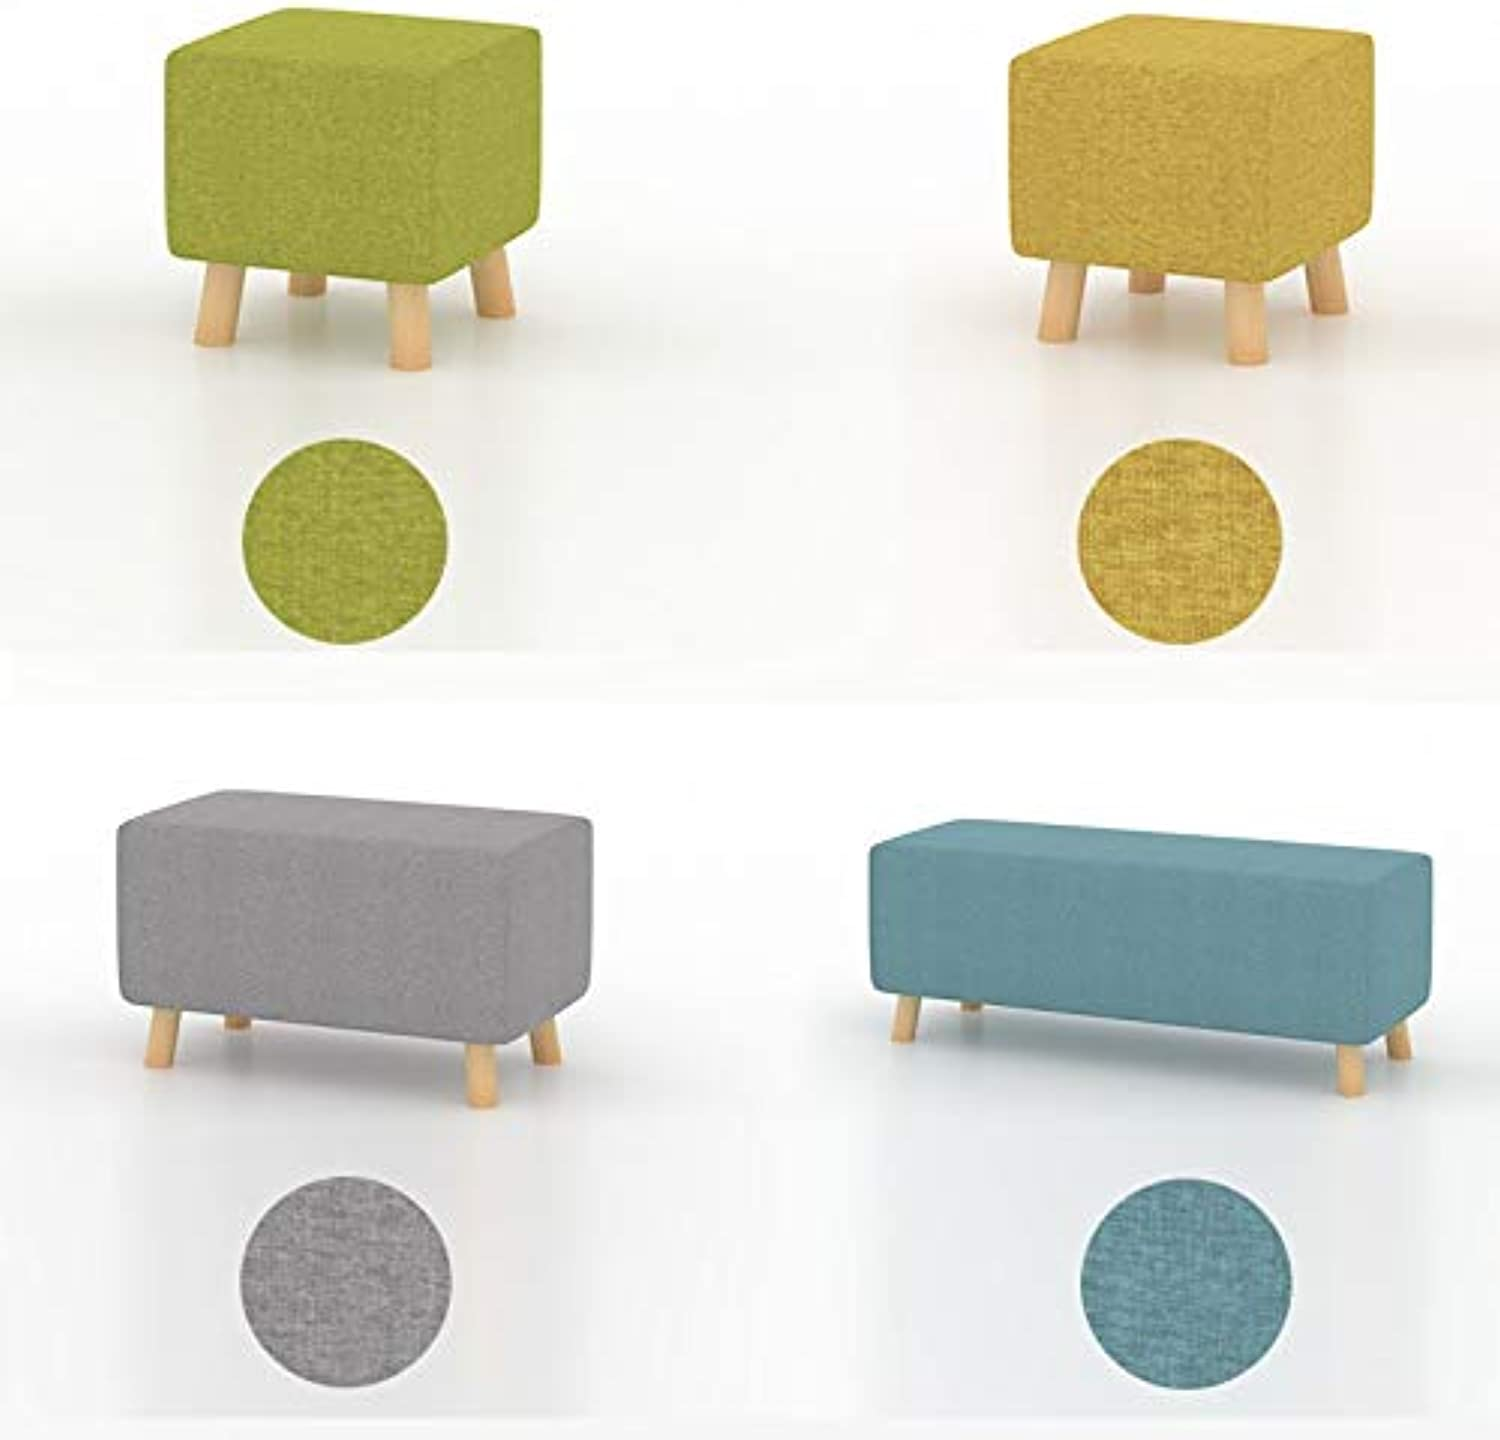 Hzpxsb Small Stool Solid Wood Living Room Seat Stool Entrance Door Change shoes Stool Style Simple Modern Creative Sofa Stool (color   Green 58CM)